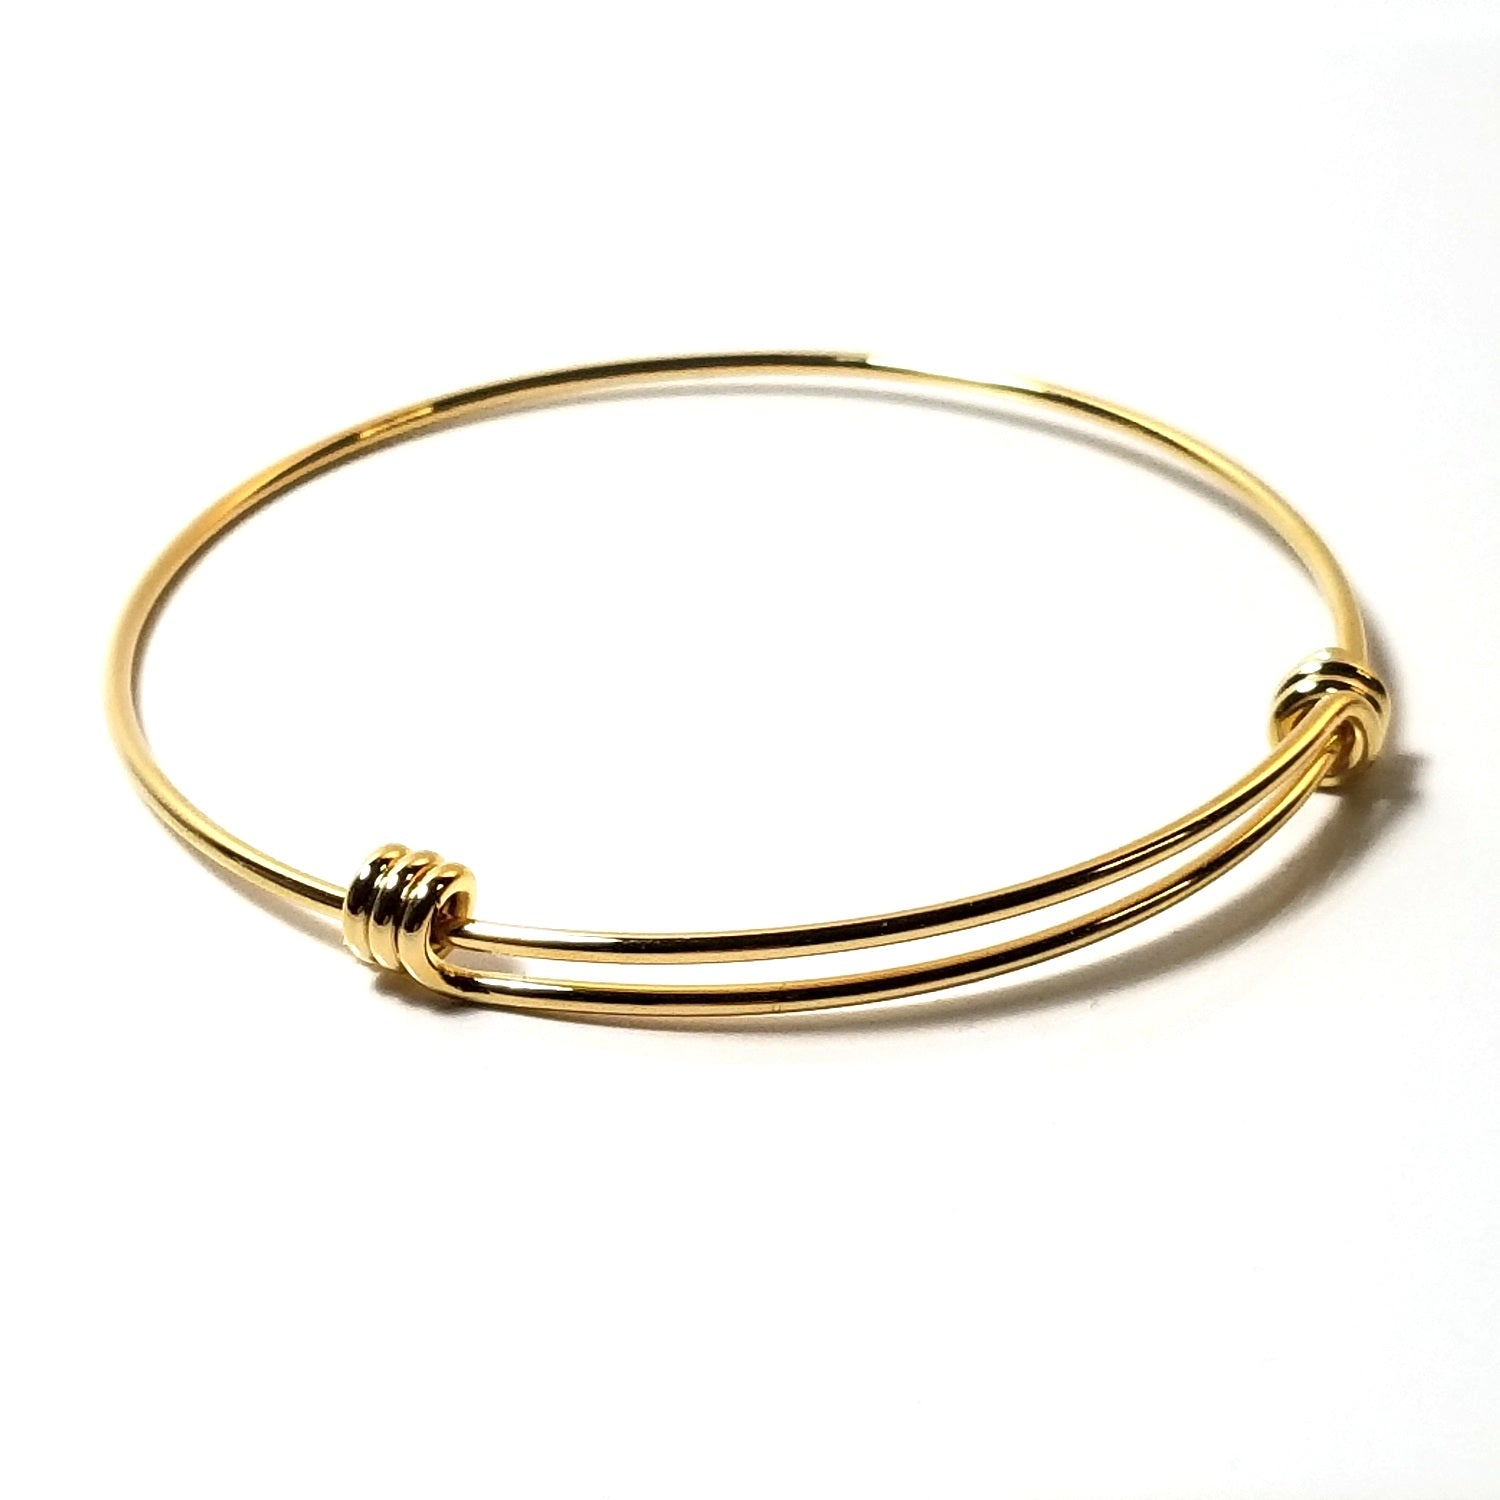 bullet trendy daily geometric bangle in plated colors unique stone gold bangles life bijoux statement from cuff design women jewelry gereit pulseiras bracelets faux accessories item for